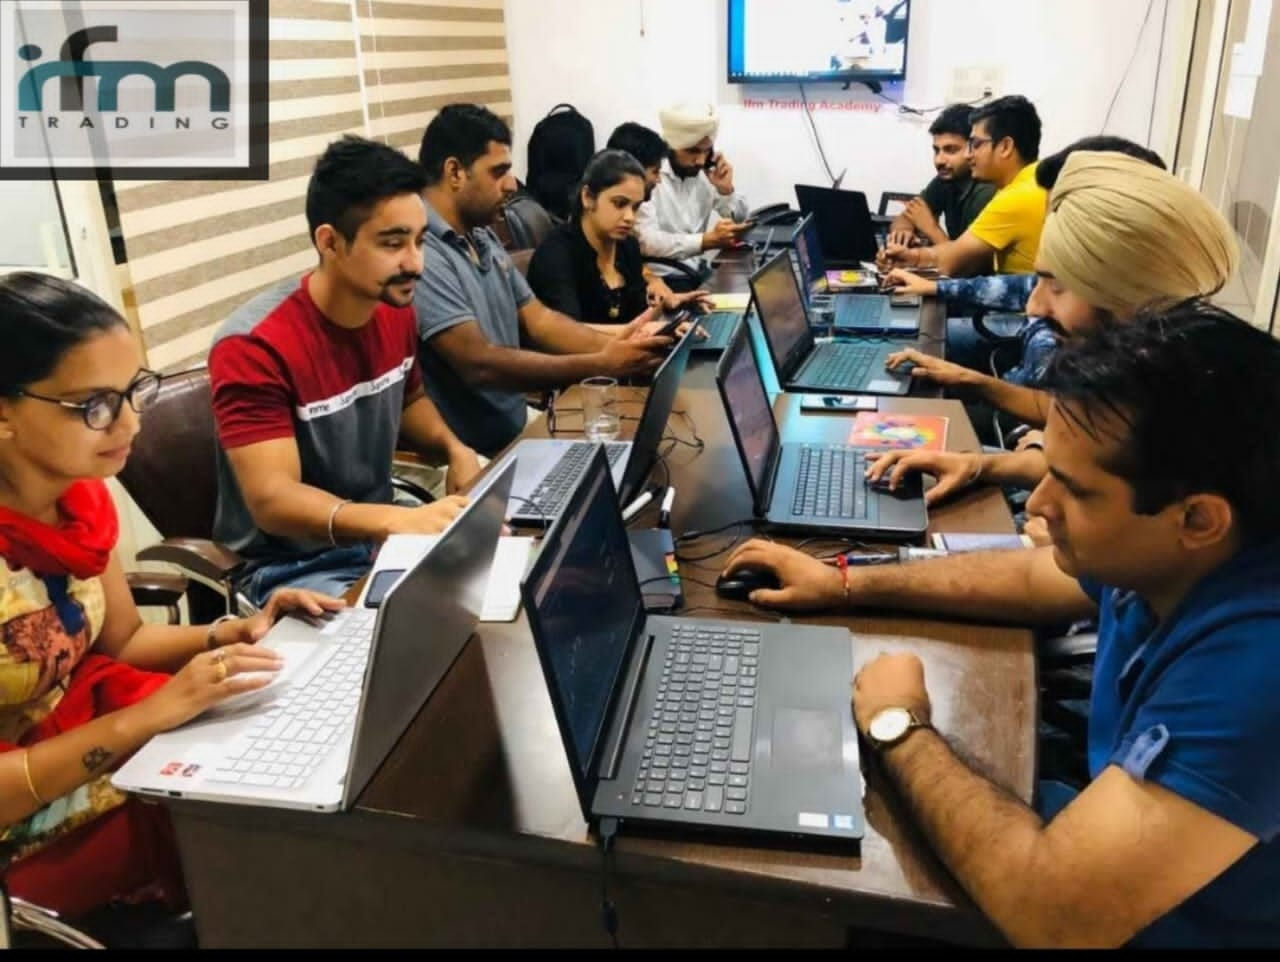 Best stock market trading center in Chandigarh with expert guidance - IFM TRADING ACADEMY | IFM Trading Academy | stock market training institute in Chandigarh, Share market course in Chandigarh, Forex training in Chandigarh, best stock market training in Chandigarh, share market classes in Chandigarh - GL72310